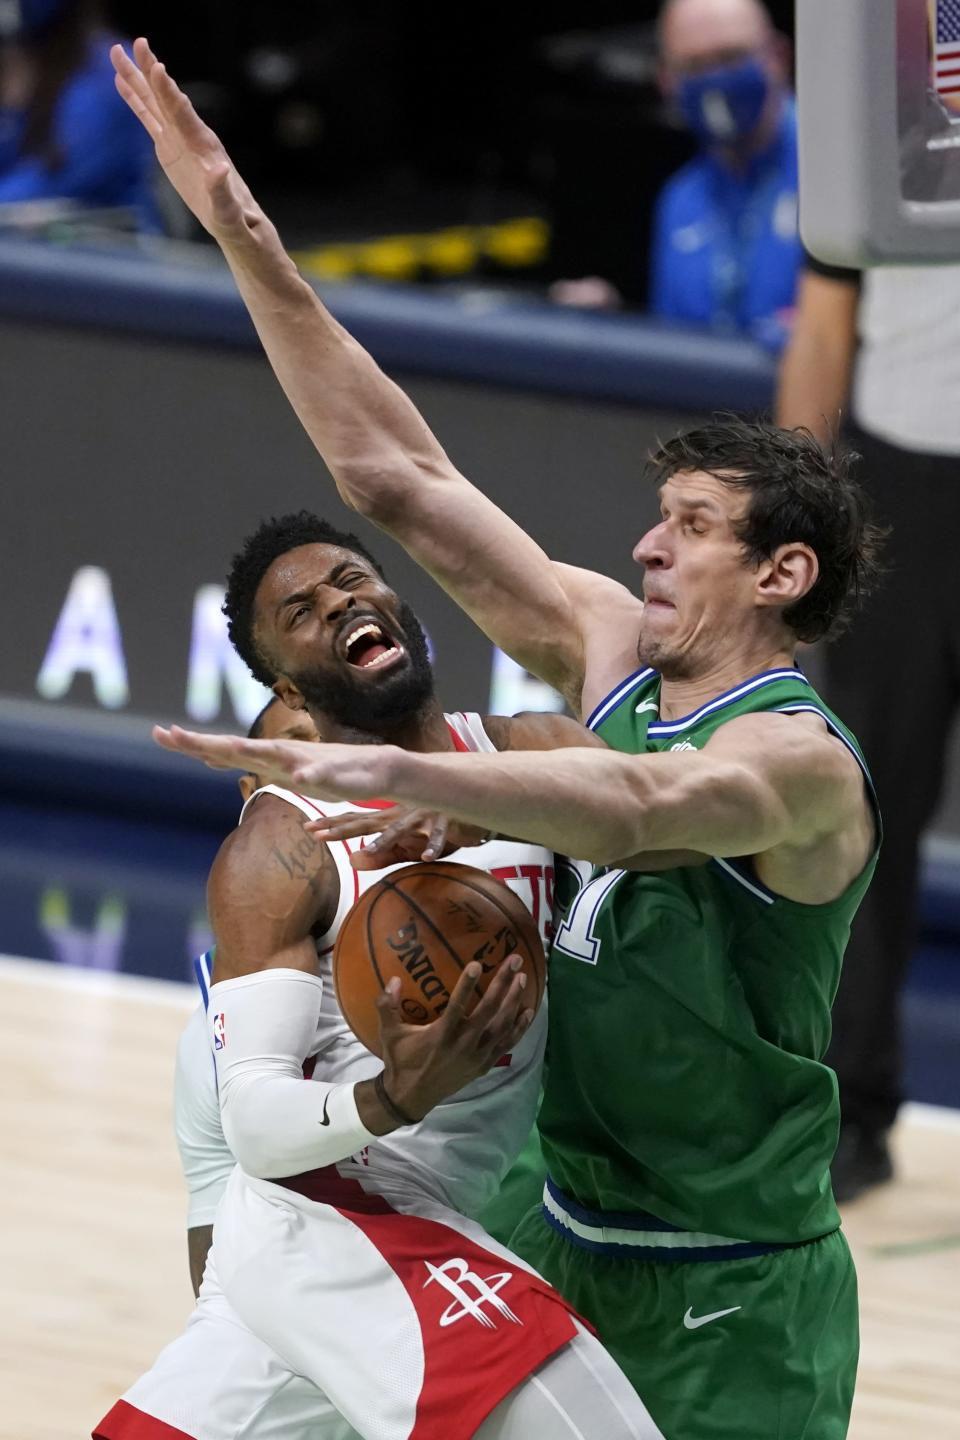 Houston Rockets guard David Nwaba (2) is unable to reach the basket for a shot as Dallas Mavericks' Boban Marjanovic (51) defends during the second half of an NBA basketball game in Dallas, Saturday, Jan. 23, 2021. (AP Photo/Tony Gutierrez)